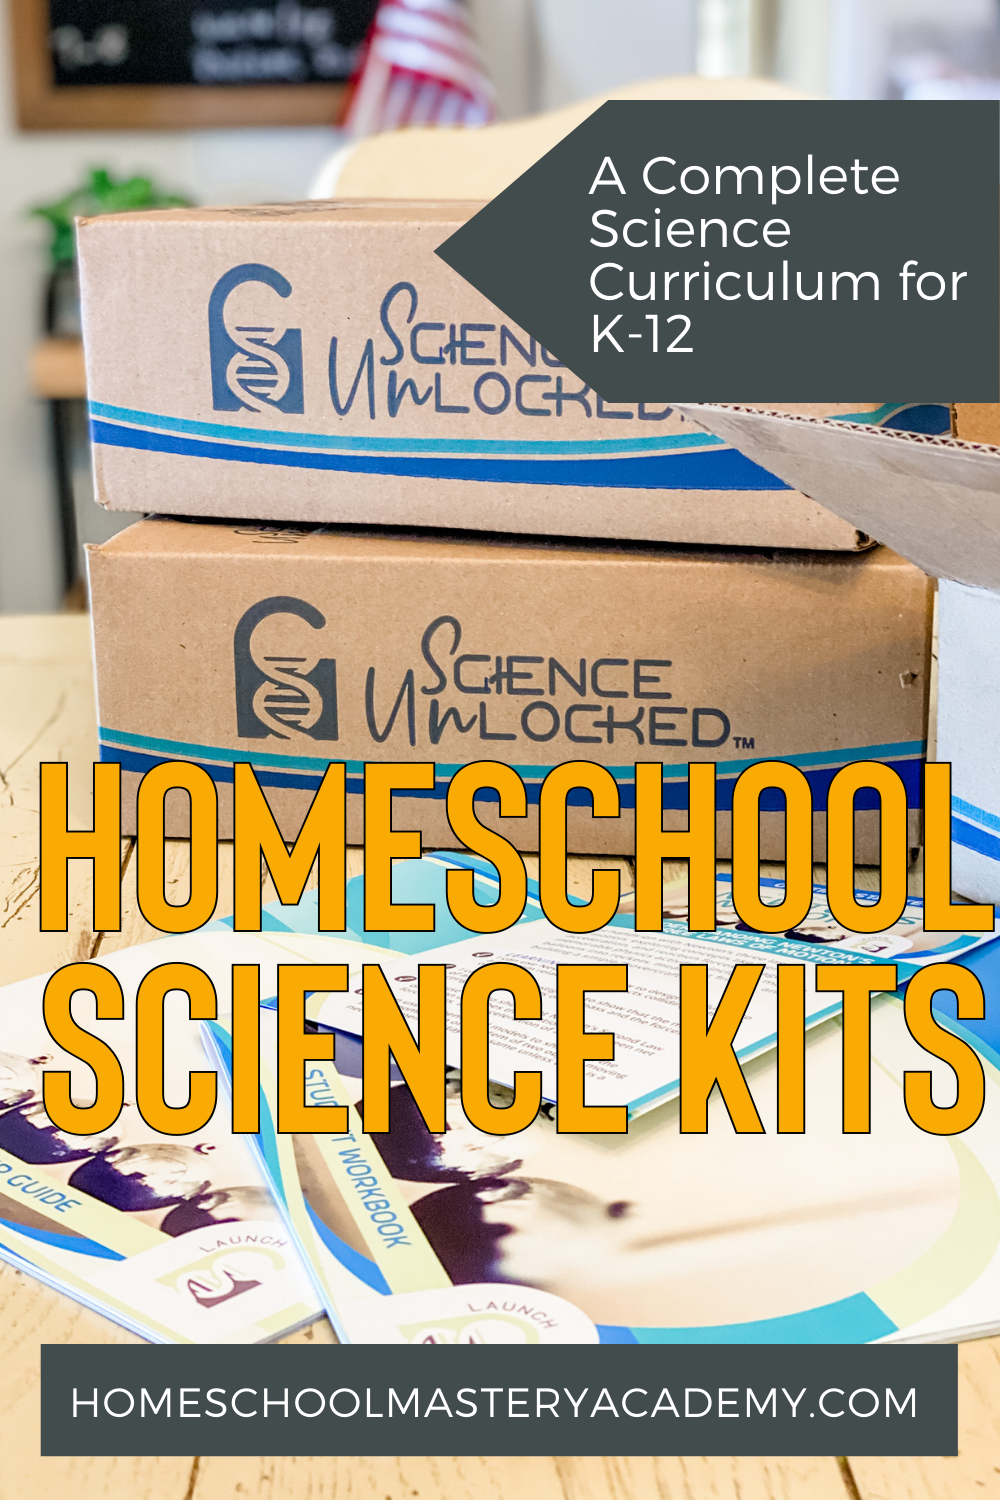 Science Unlocked Homeschool Science Kits for K-12th Grade. Check out these awesome new kits with a balanced blend of hands-on activities and workbook. Perfect for all learning styles! #homeschool #homeschoolscience #sciencecurriculum #homeschoolcurriculum